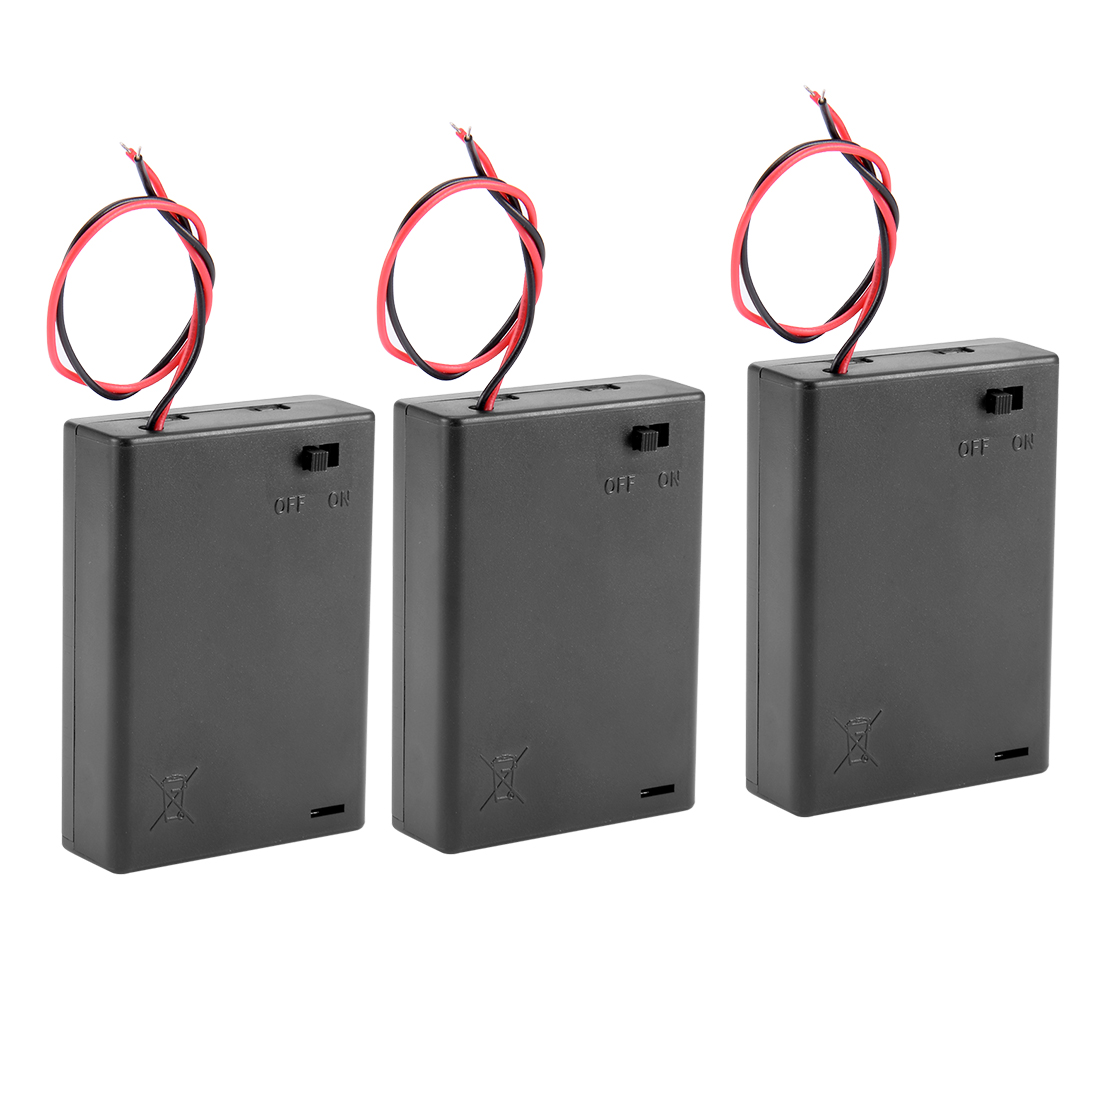 Plastic ON/OFF Switch 2-Wire Leads DC 3 x 4.5V AA Battery Case Holder Box 3Pcs